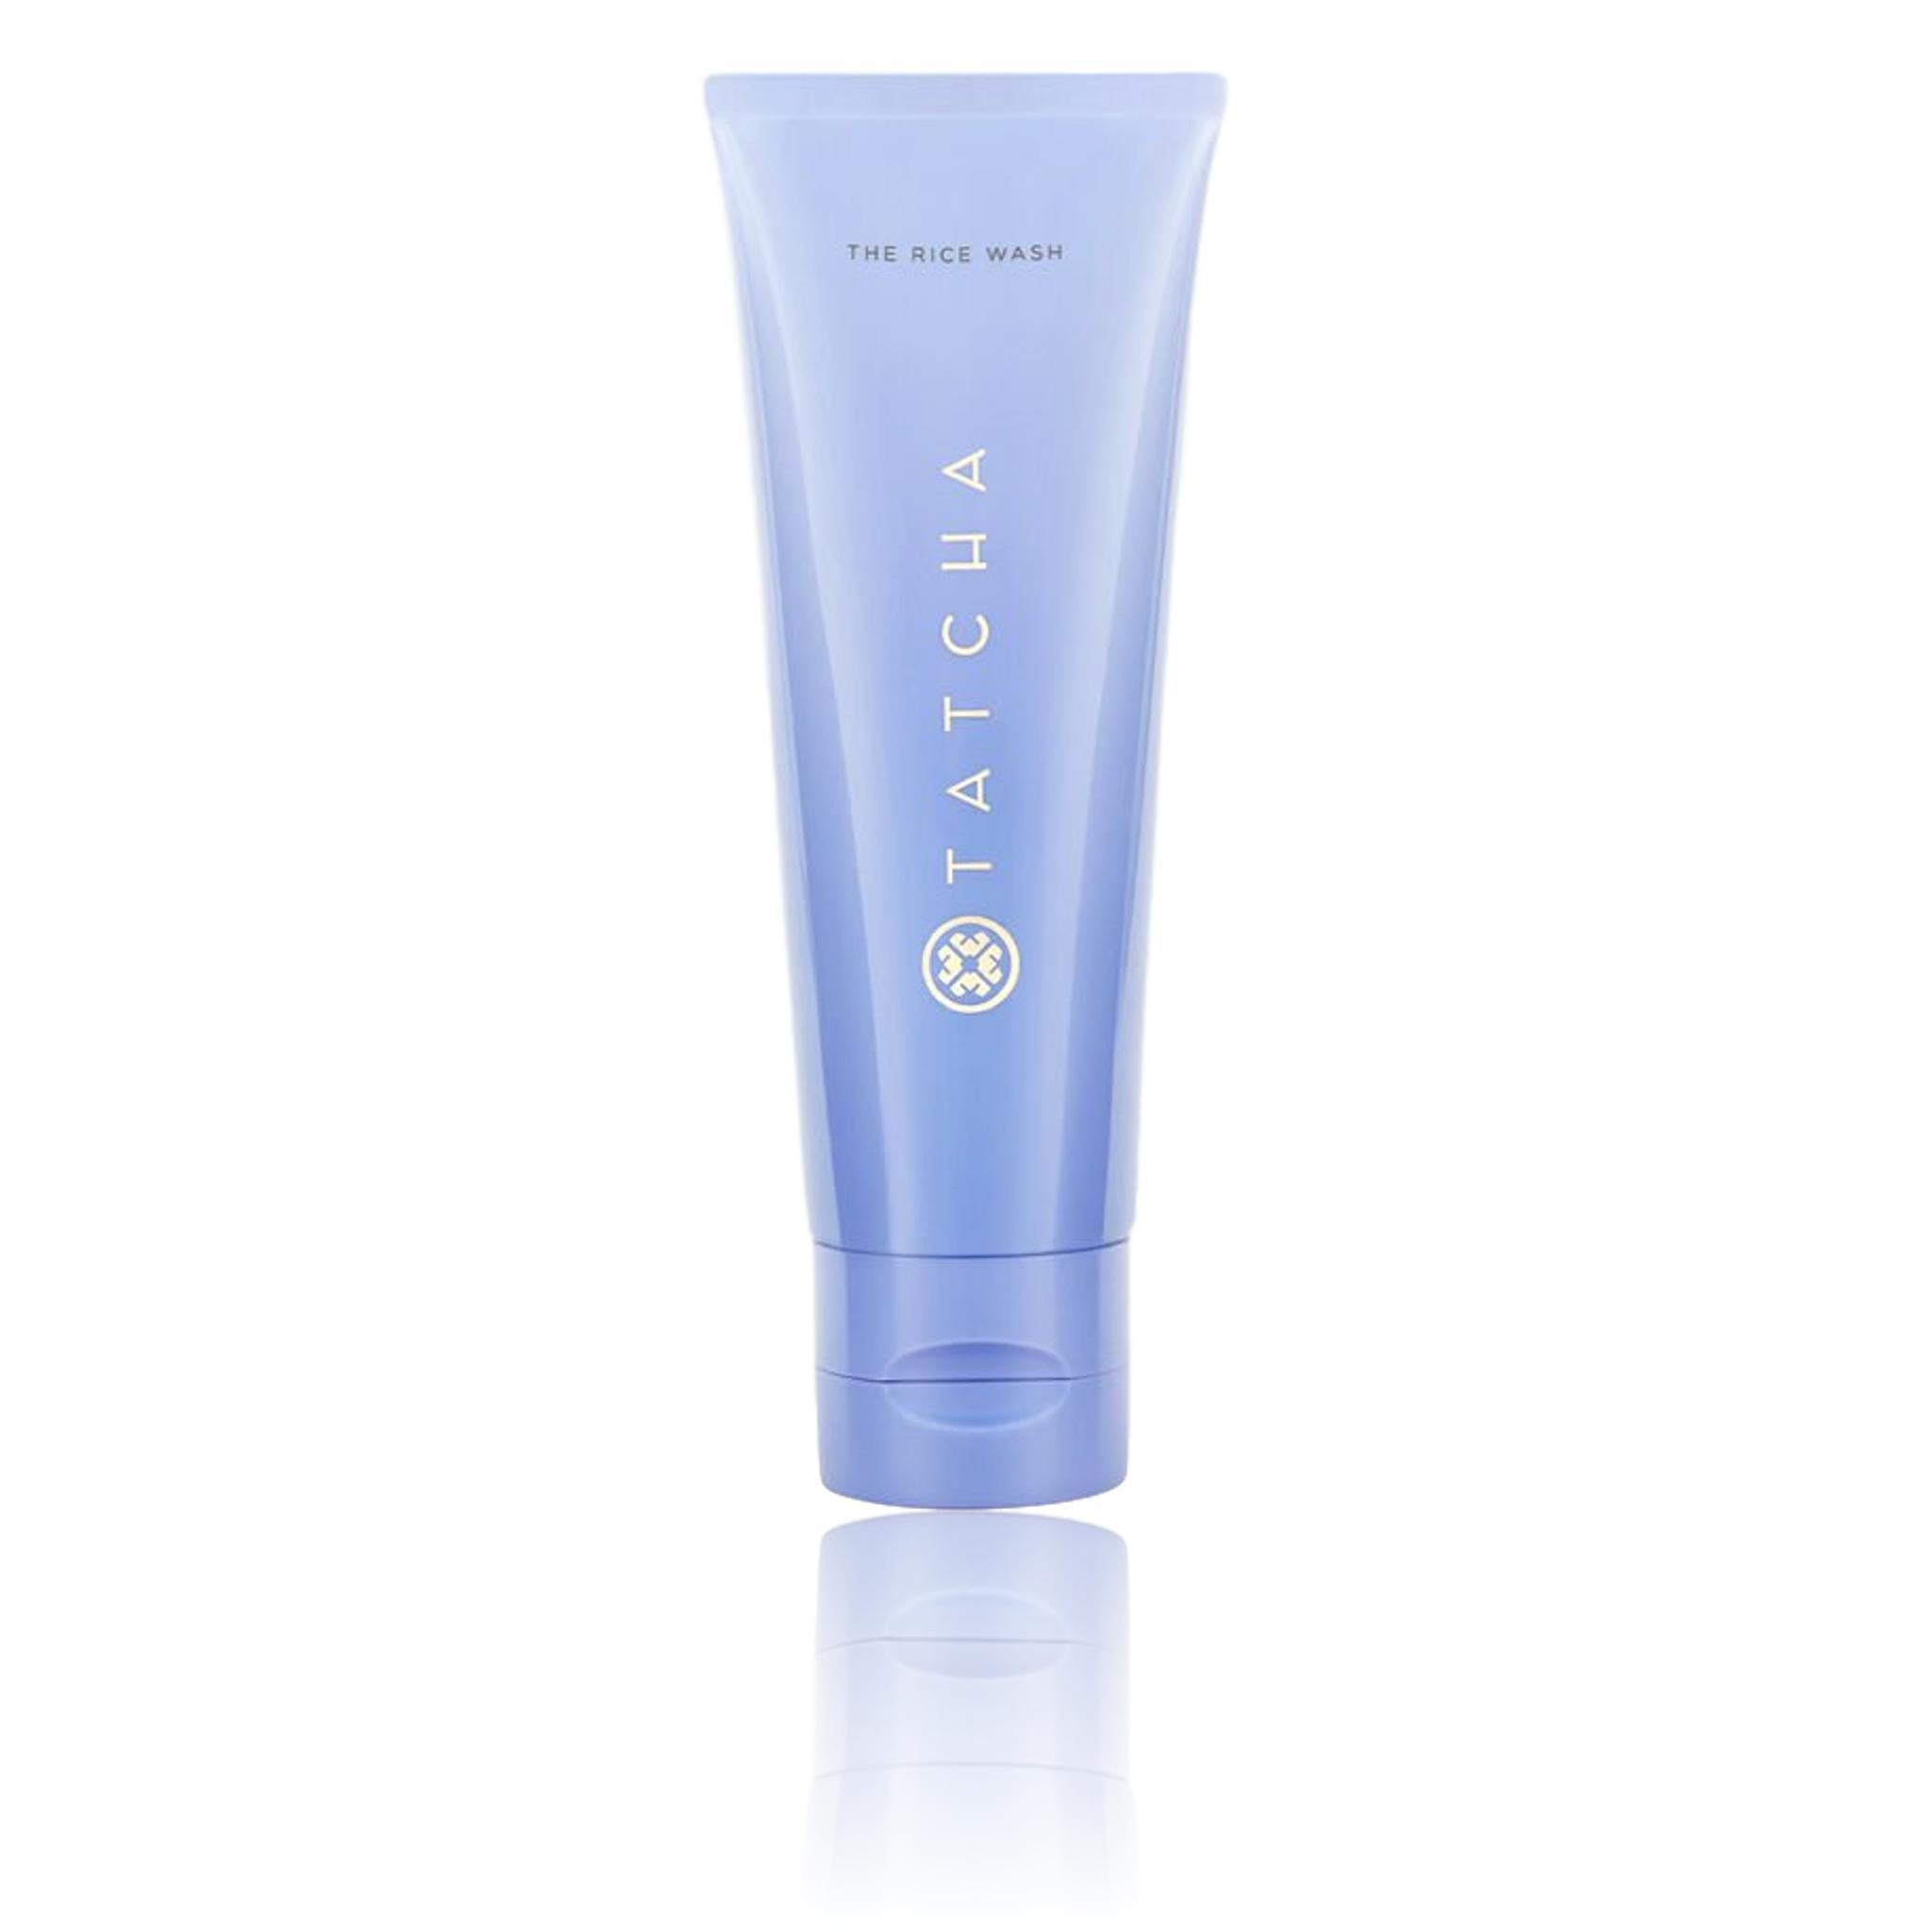 TATCHA THE RICE WASH Soft Cream Cleanser (120mL | 4.0 fl.oz), Cleanser, London Loves Beauty